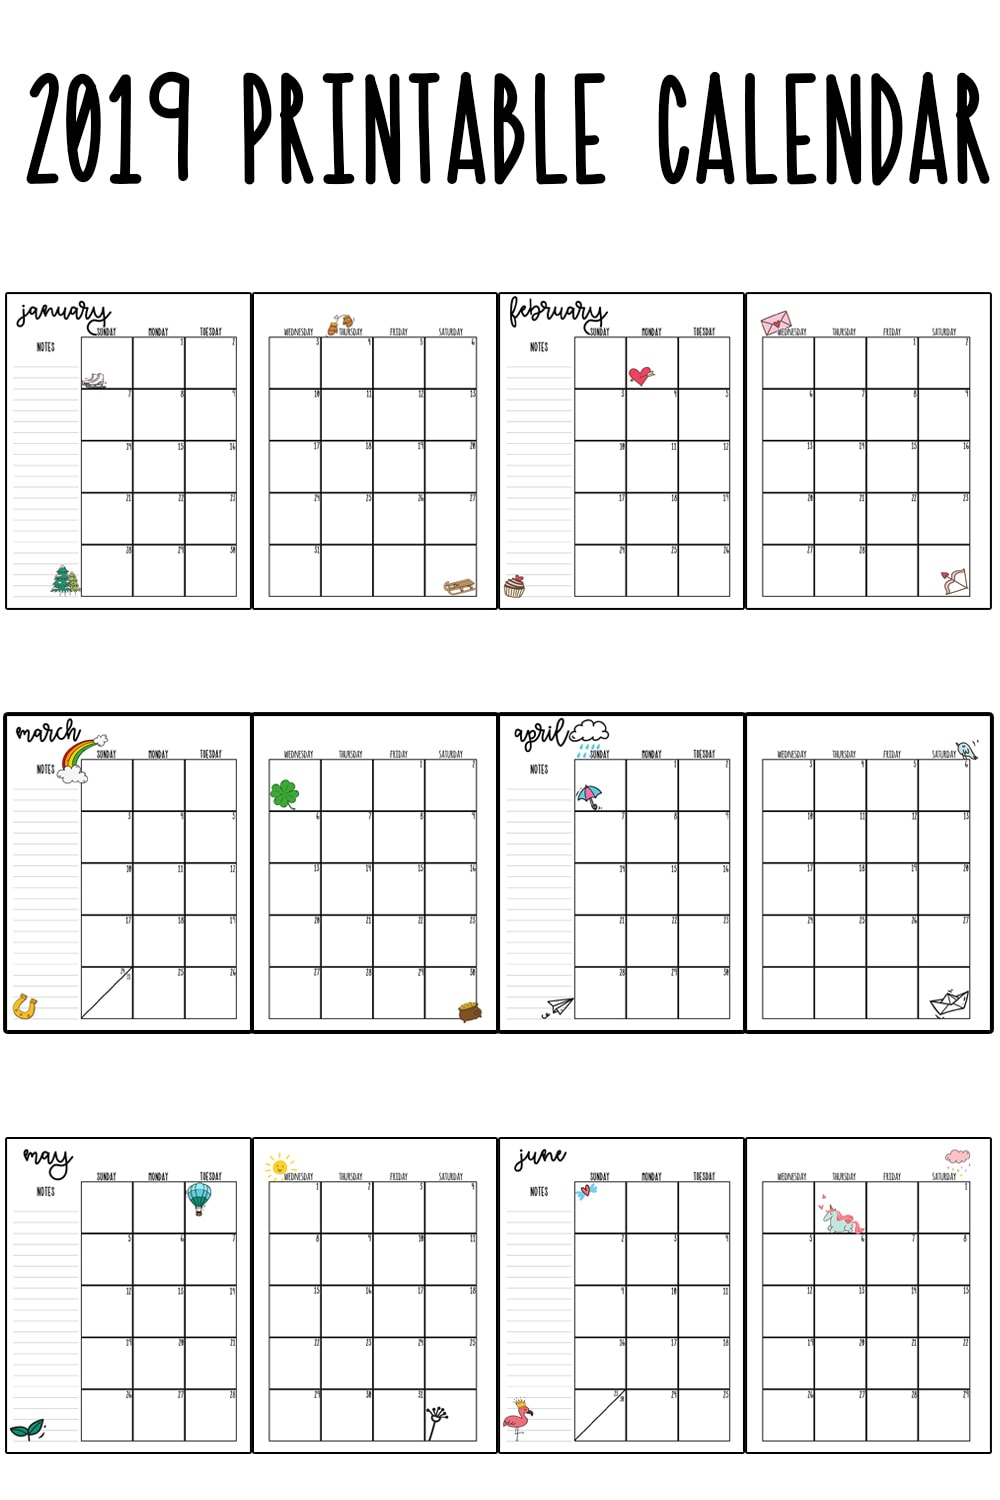 image regarding Calendars Free Printable called 2019 Printable Calendar